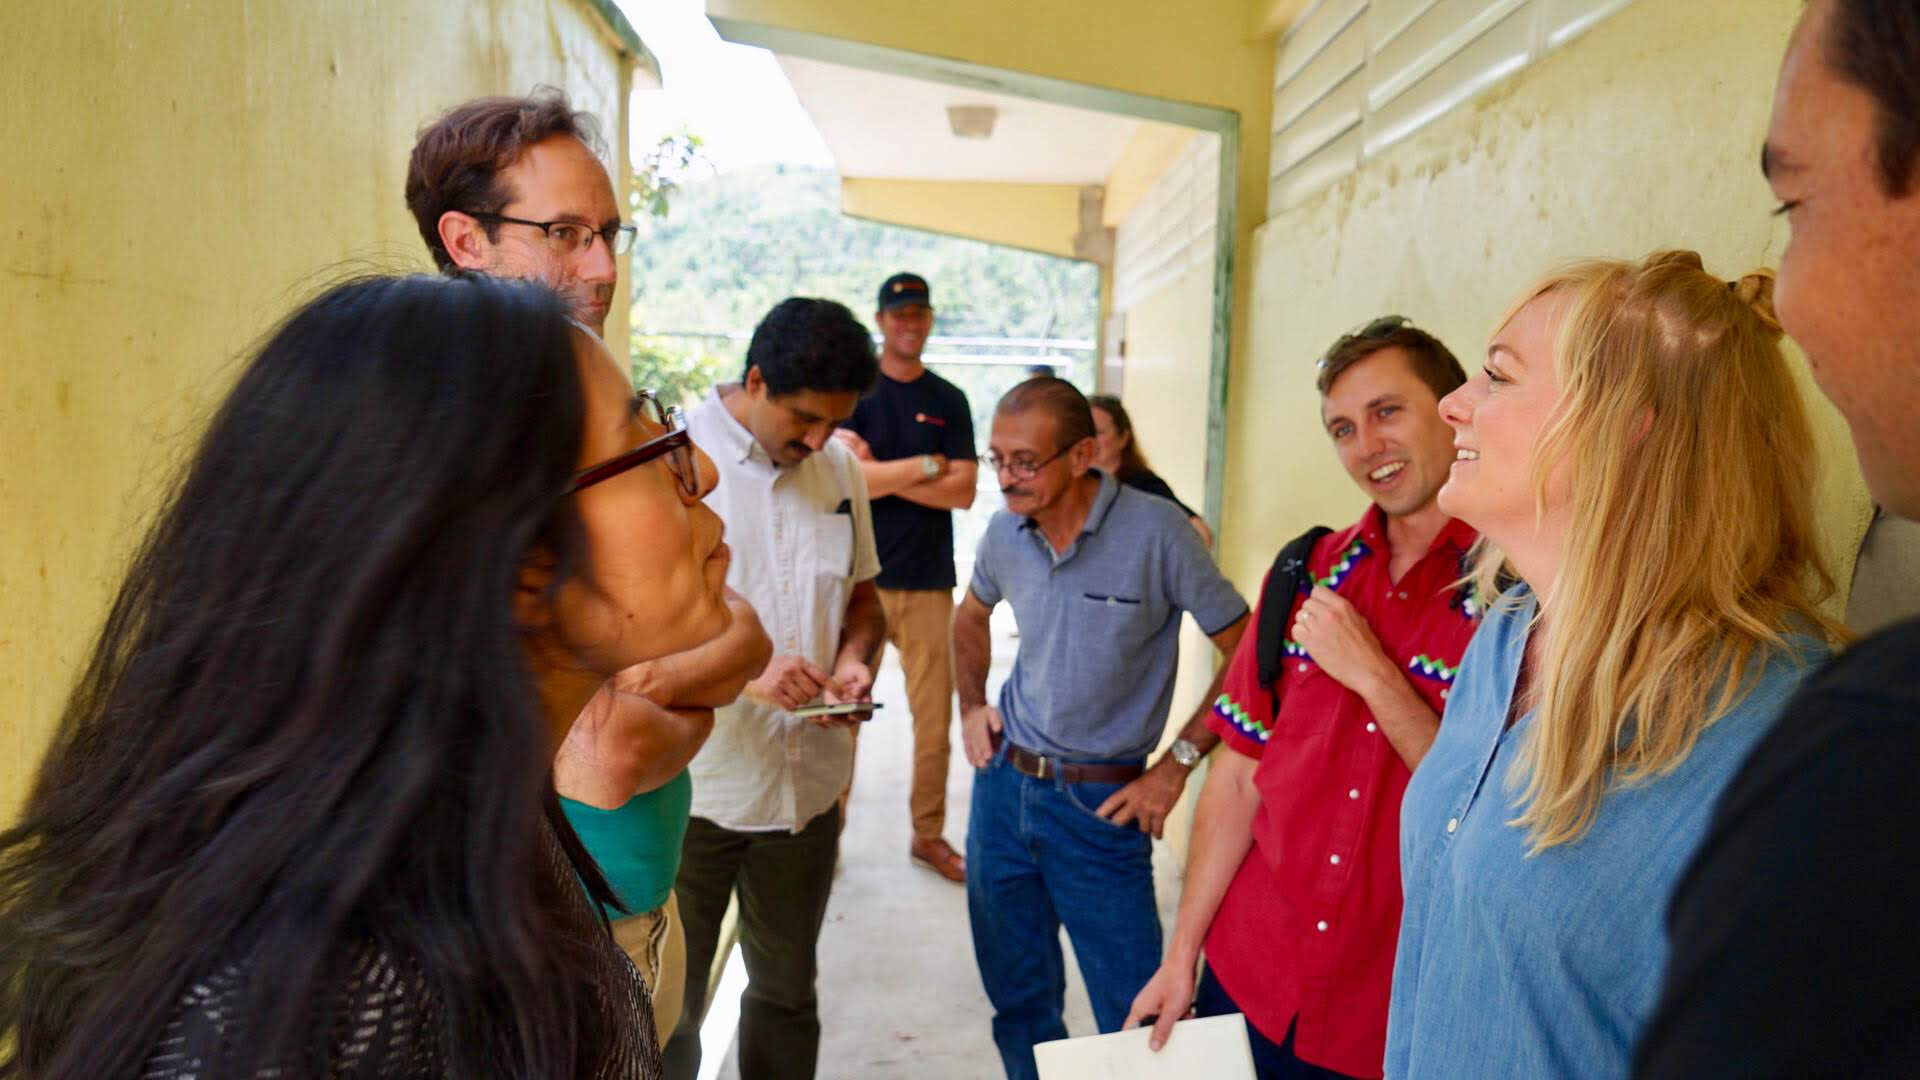 On Monday, July 16, staff from Facebook joined Direct Relief to visit neighborhoods in Utuado, Puerto Rico, where residents have been without consistent power and water for months. The Facebook team, which is focused on building tools to connect people in crisis, met with community leaders to learn how technology was used to shape Hurricane Maria response efforts. (Bryn Blanks/Direct Relief)